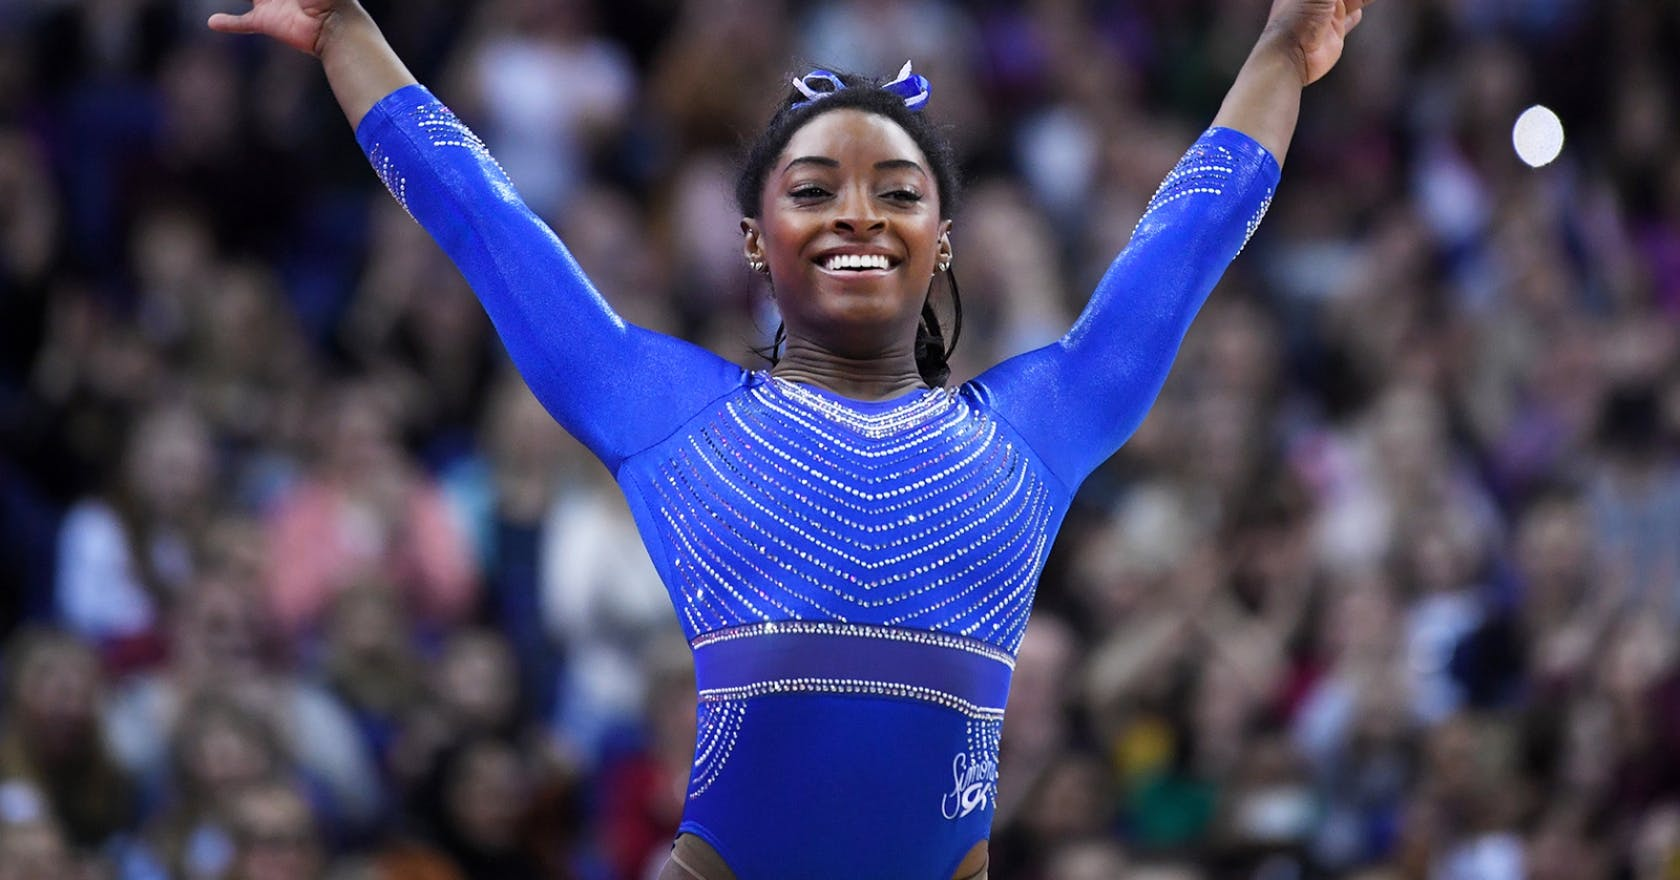 Simone Biles: I Slept All the Time to Cope With Sexual